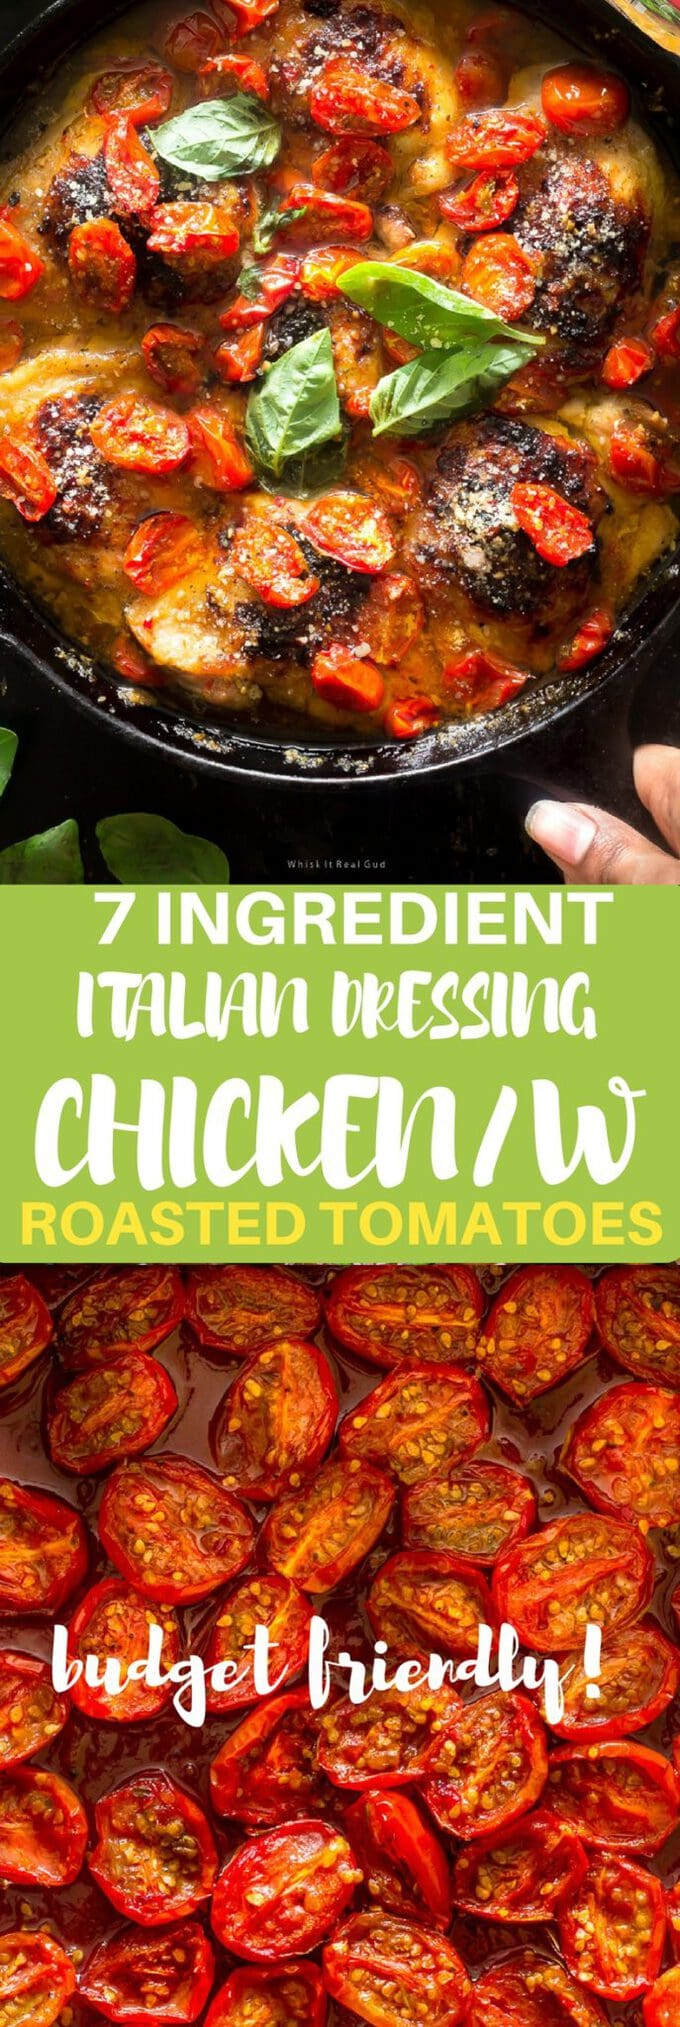 Need a plan b recipe? Or maybe you are on a budget and need something to get you through the week? This recipe is perfect for you. School is back in session and I know you need something easy/budget friendly to cook tonight! This easy 7 ingredient Italian dressing baked chicken thighs with roasted tomatoes will be ready in no time. No one will believe you only used Italian dressing and a couple of other ingredients. This meal is definitely budget friendly but restaurant quality!